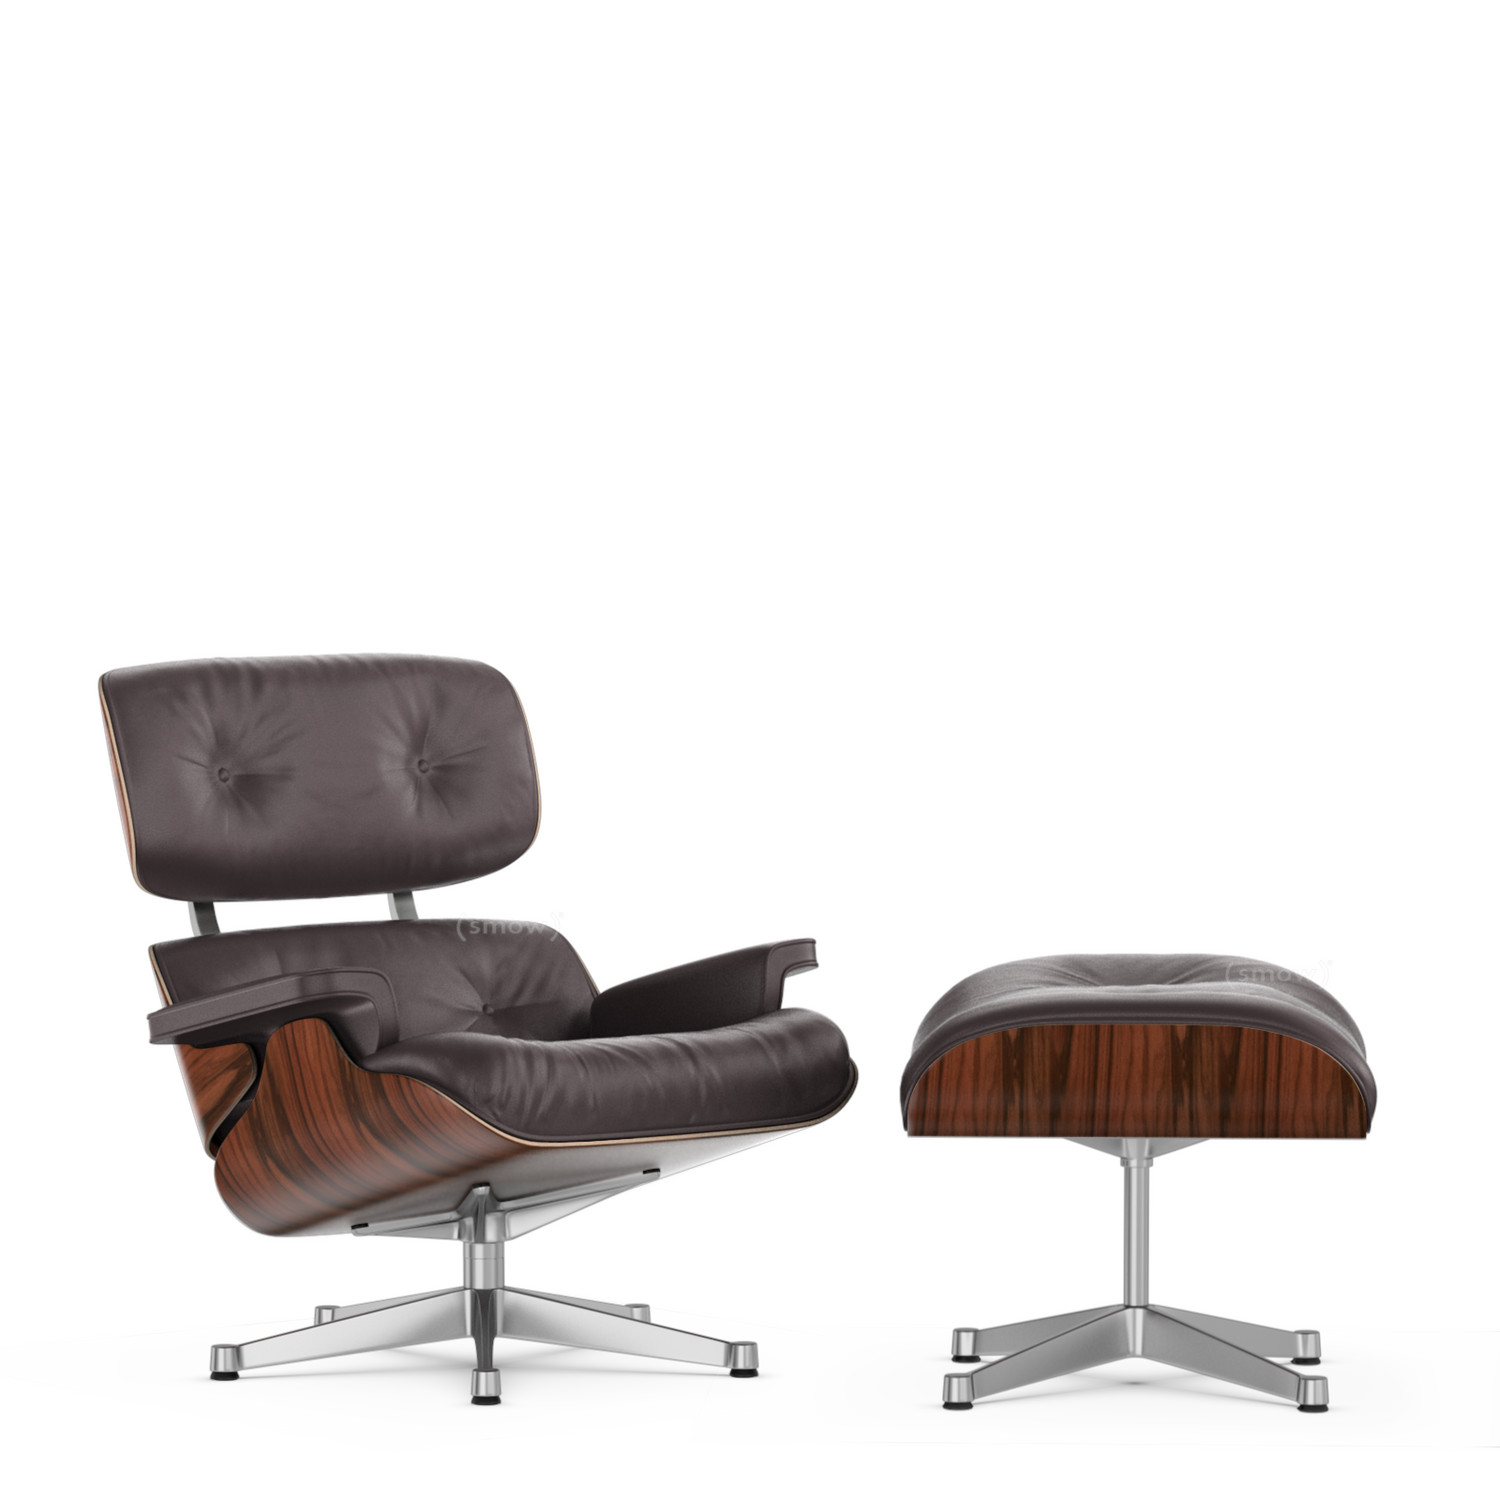 Eames Lounge Chair Zubehör Vitra Lounge Chair Ottoman Beauty Versions Santos Palisander Pflaume 89 Cm Aluminium Poliert